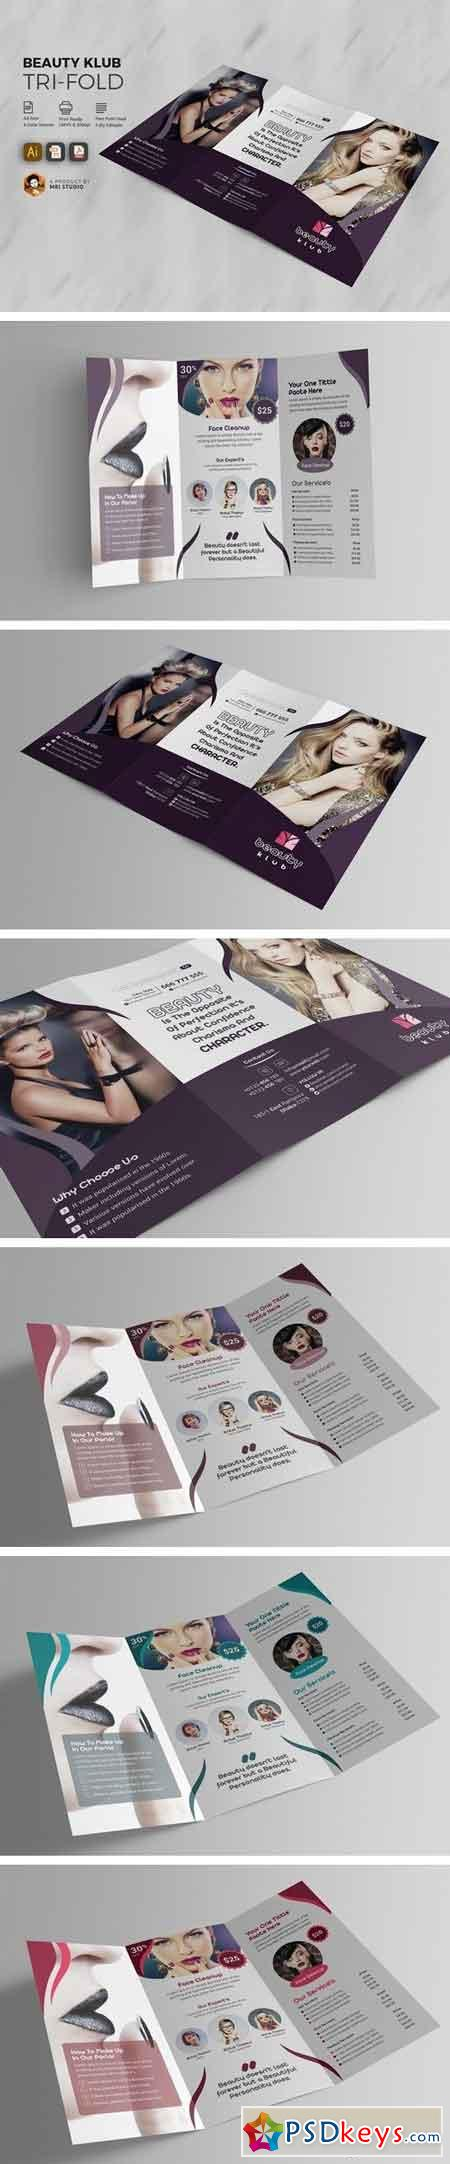 Popular Beauty Salon Tri-Fold 1538260